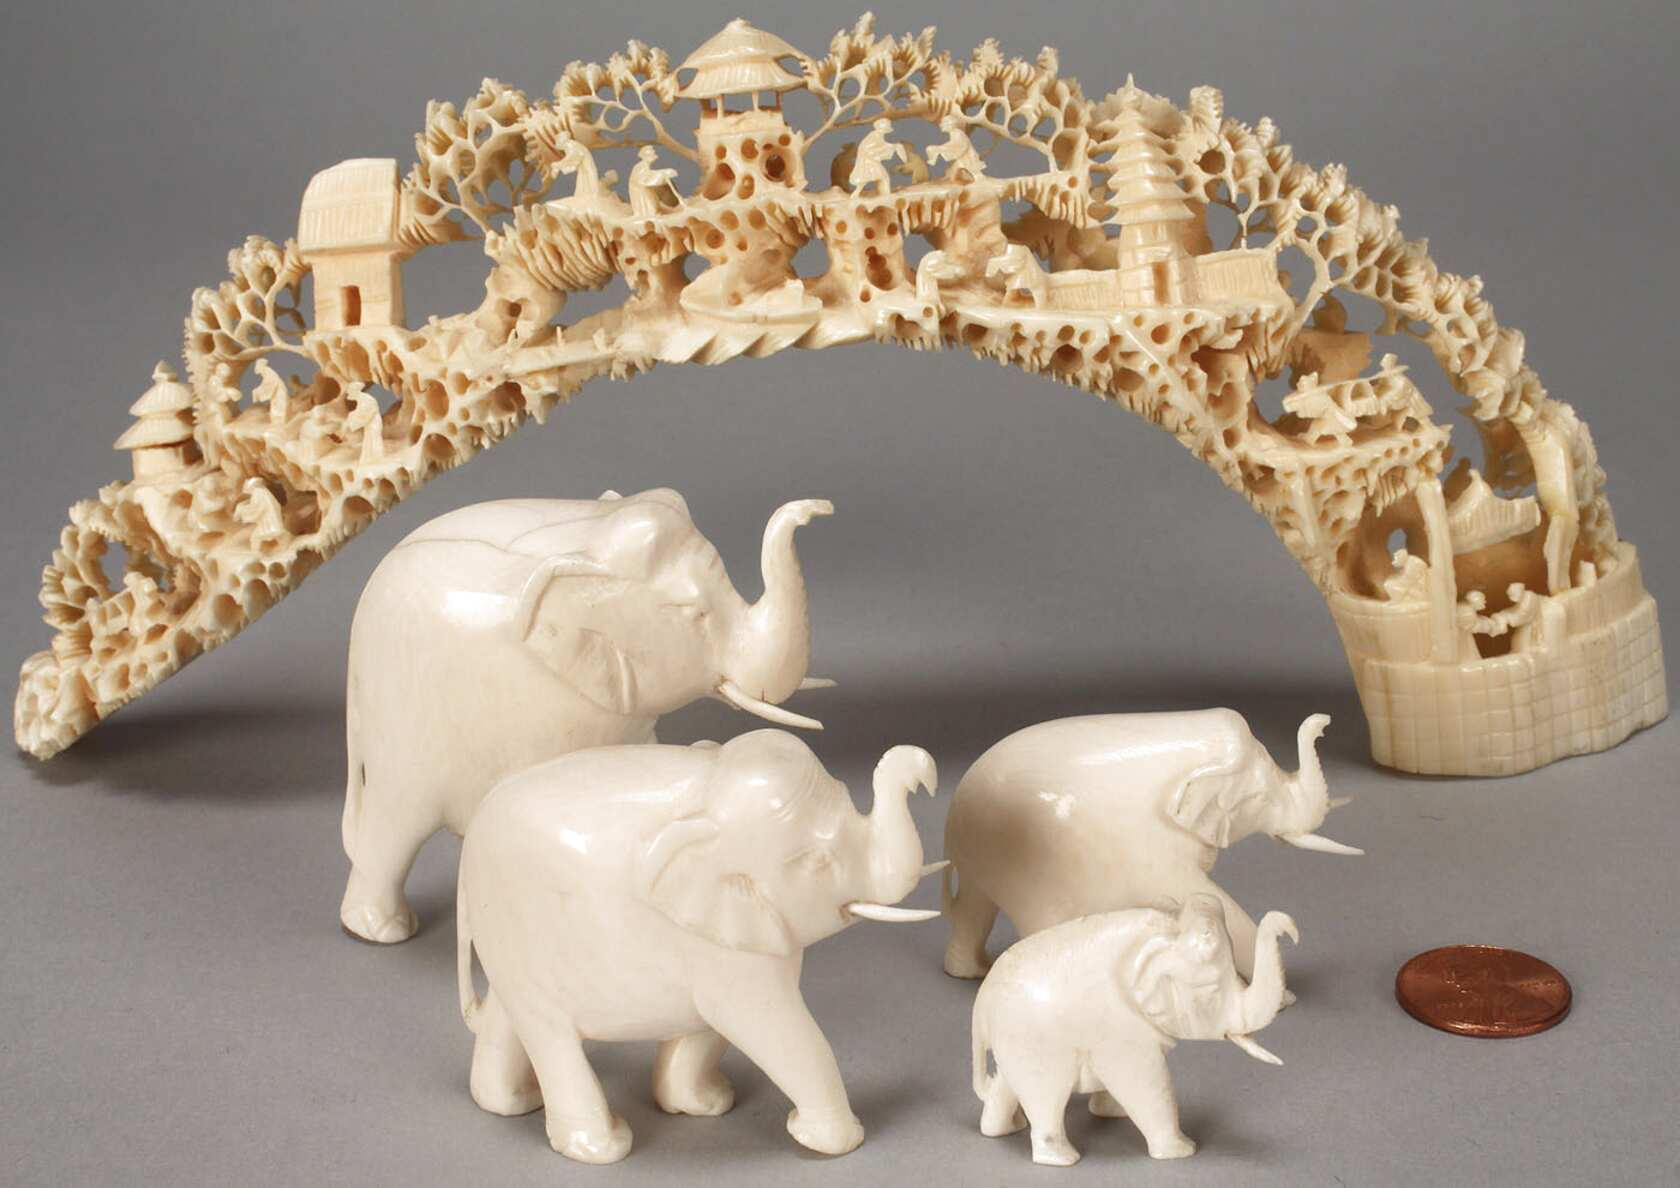 Elephant Ivory Carvings for sale | Only 3 left at -65%